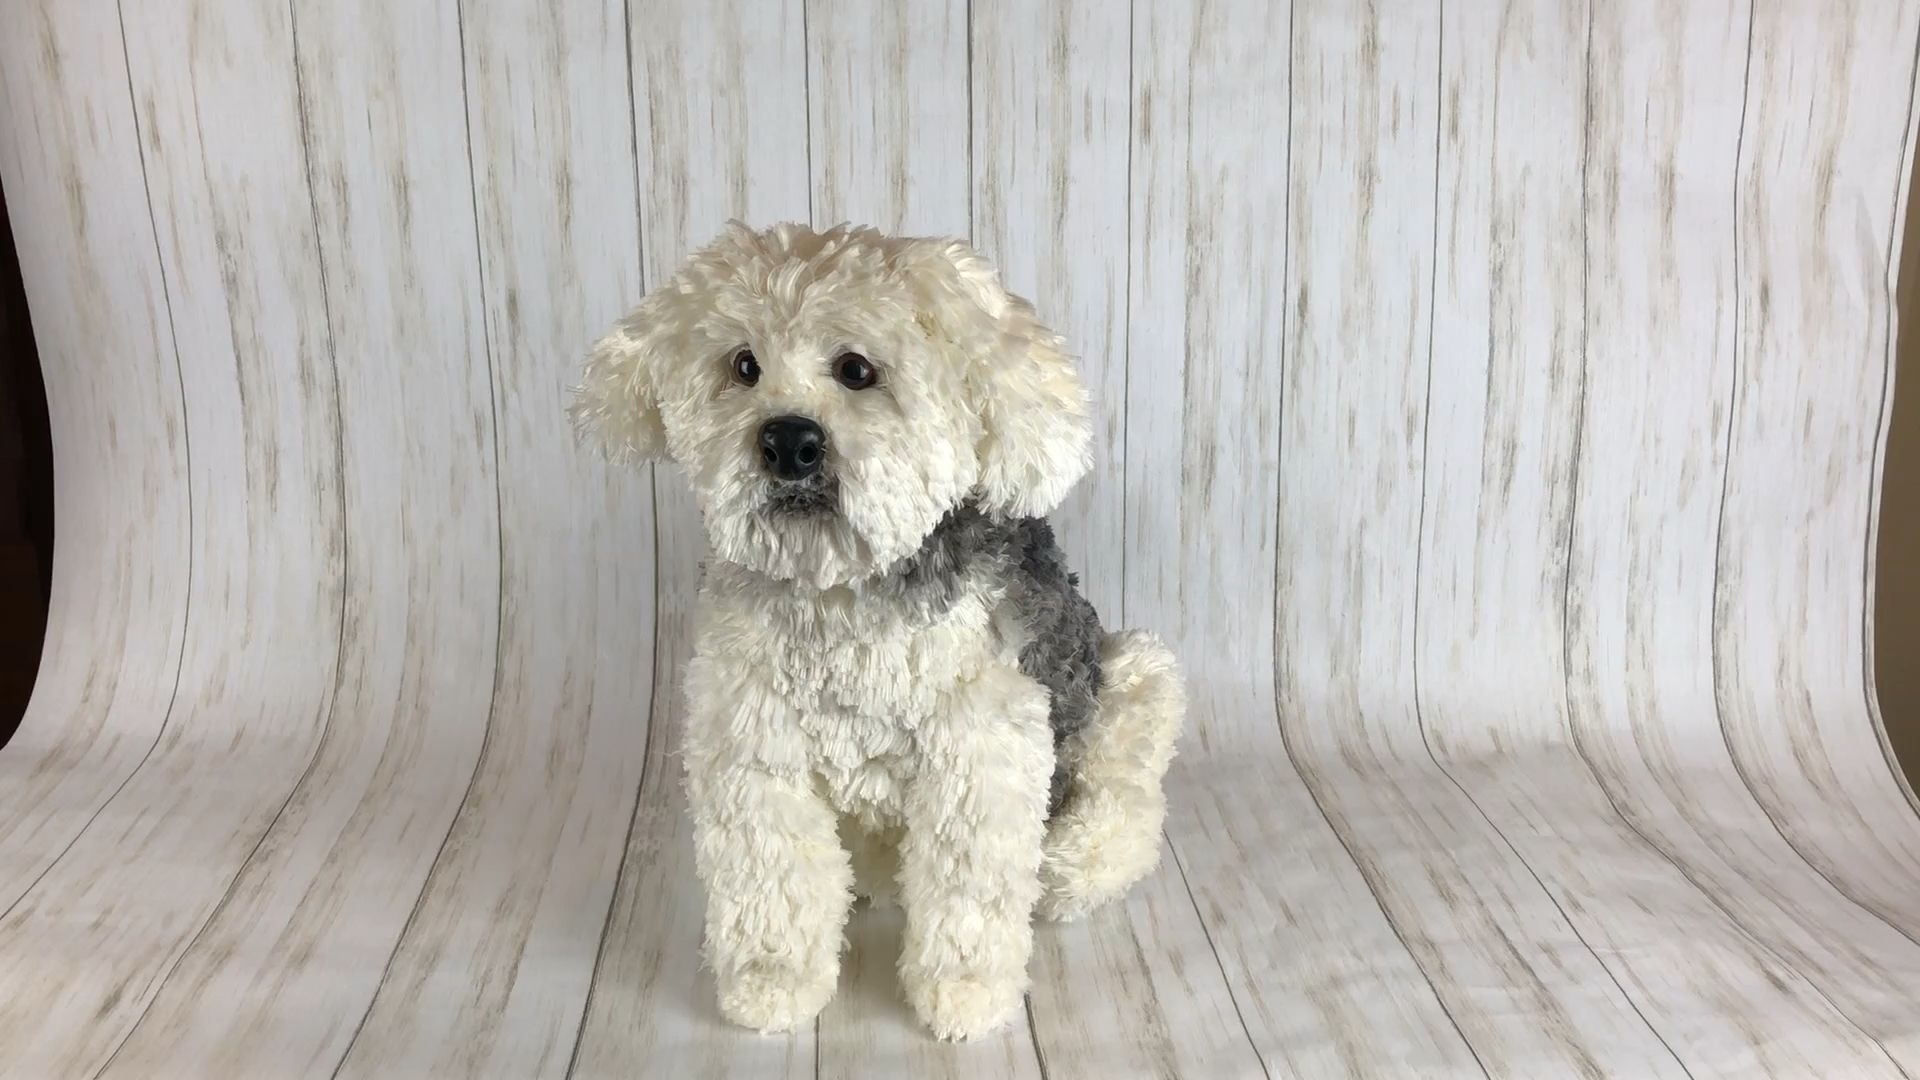 Crochet Maltese Terrier Amigurumi | Crochet designs, Crochet dog ... | 1080x1920